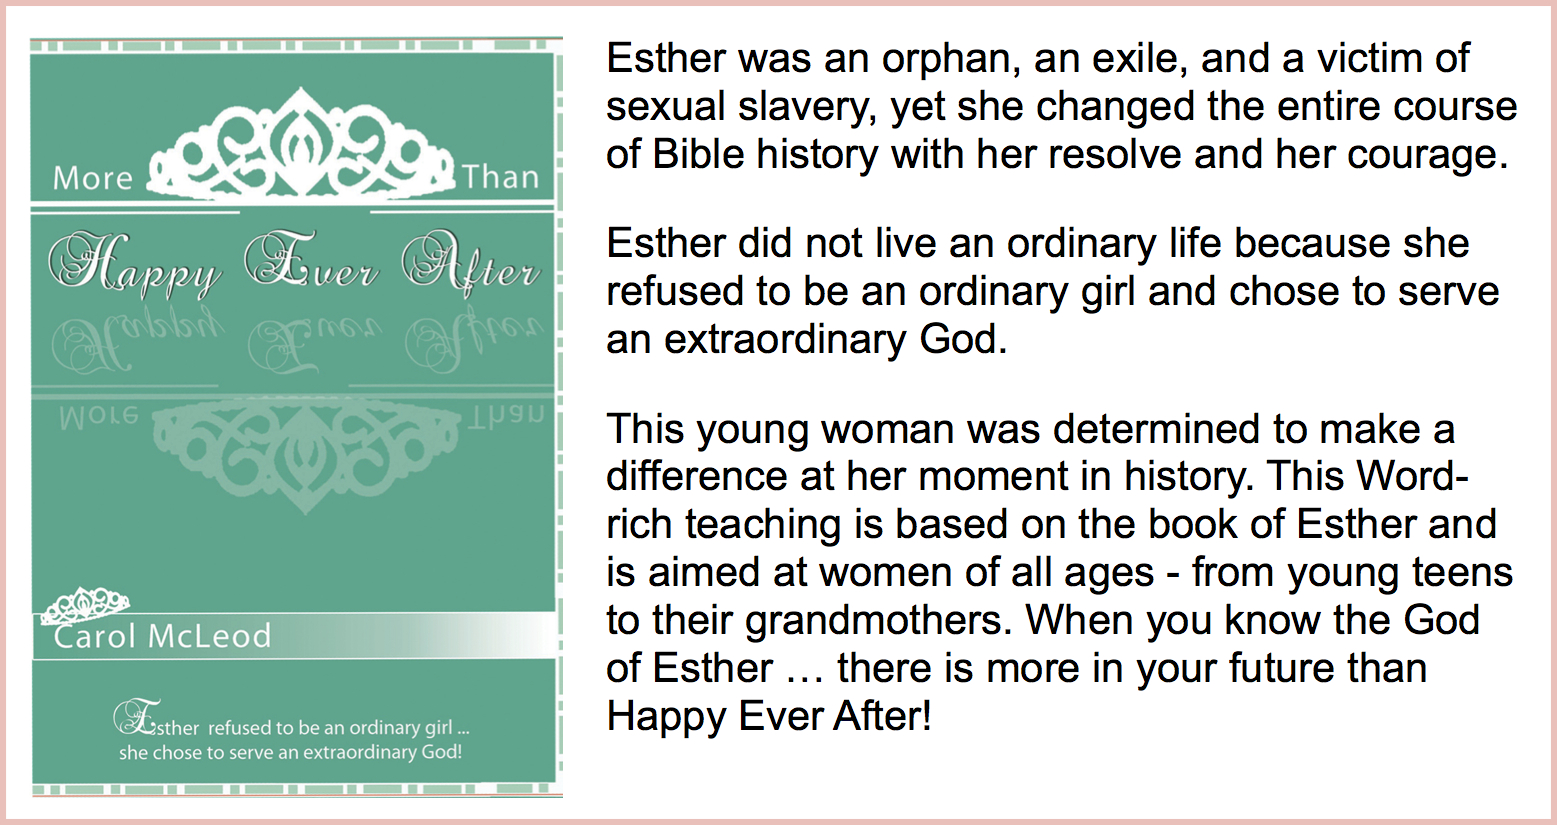 More Than Happy Ever After  Teaching Download - $25